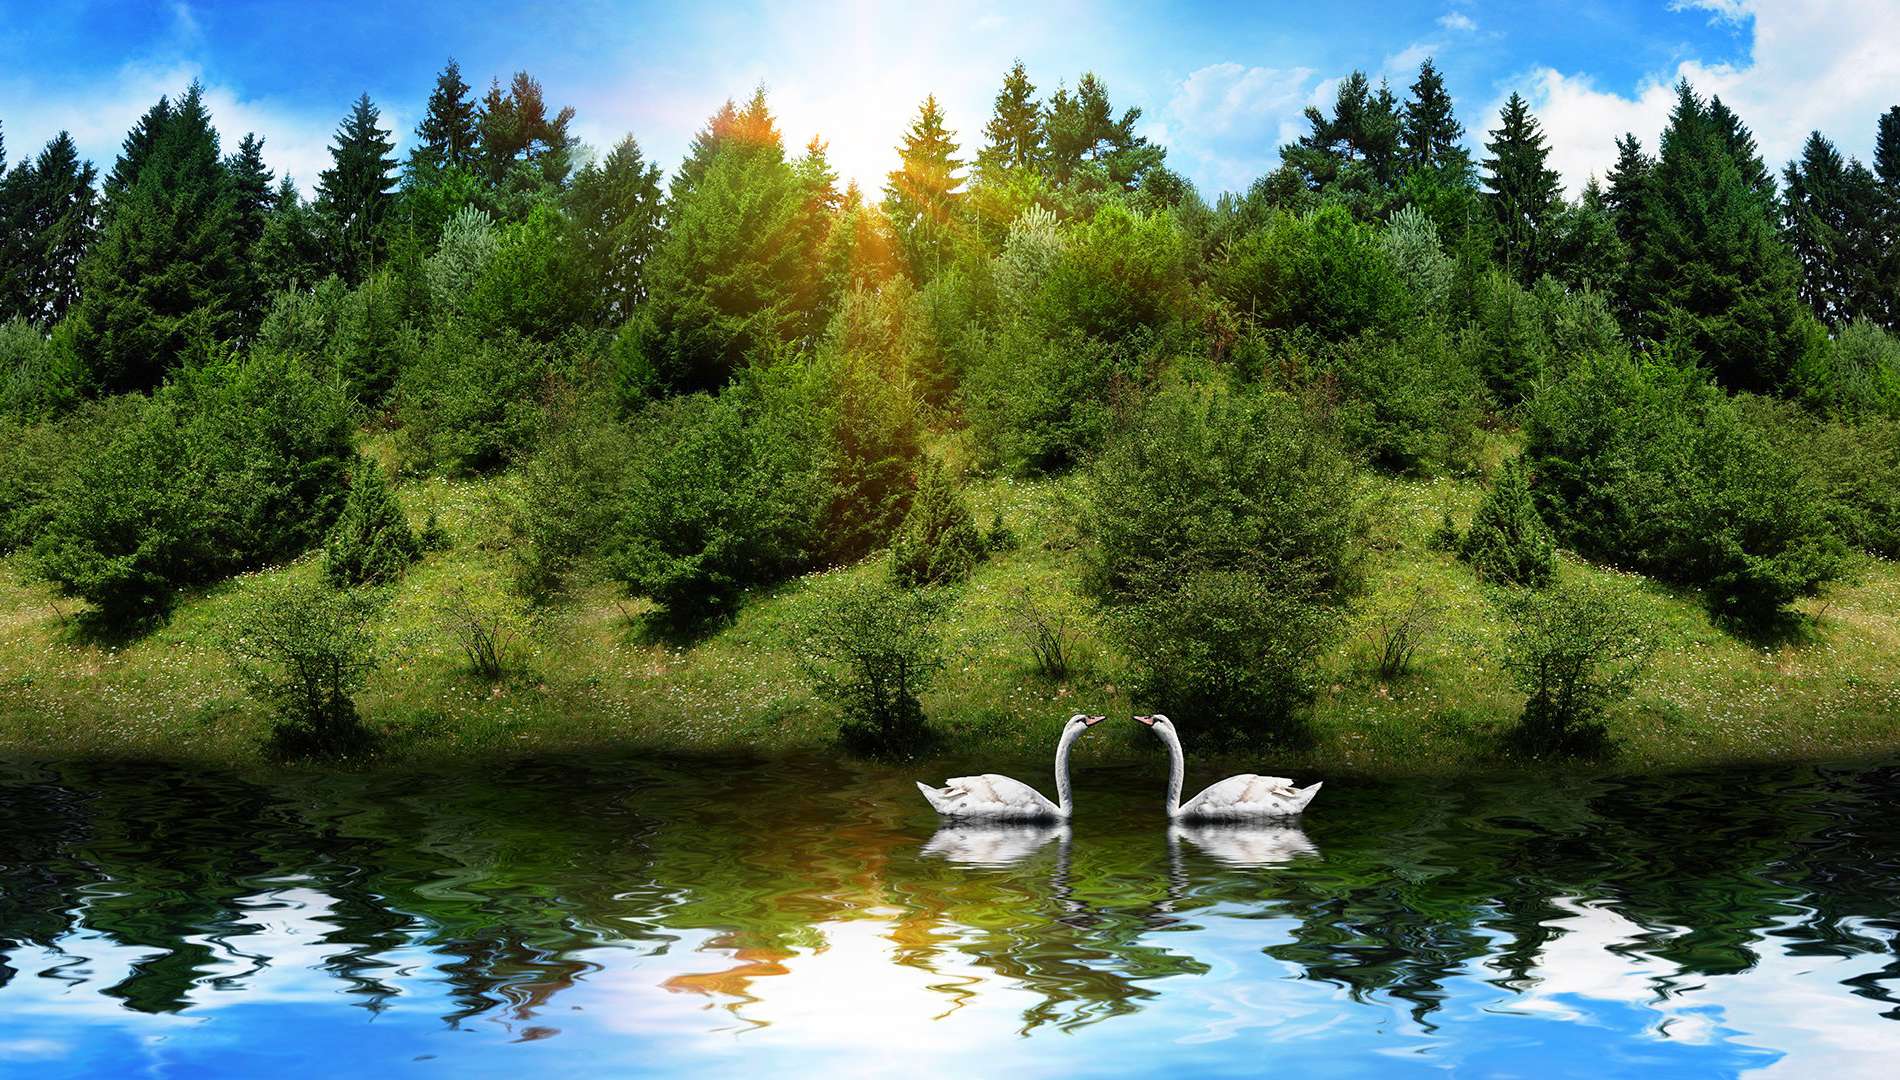 Swans and Scenery Wallpaper